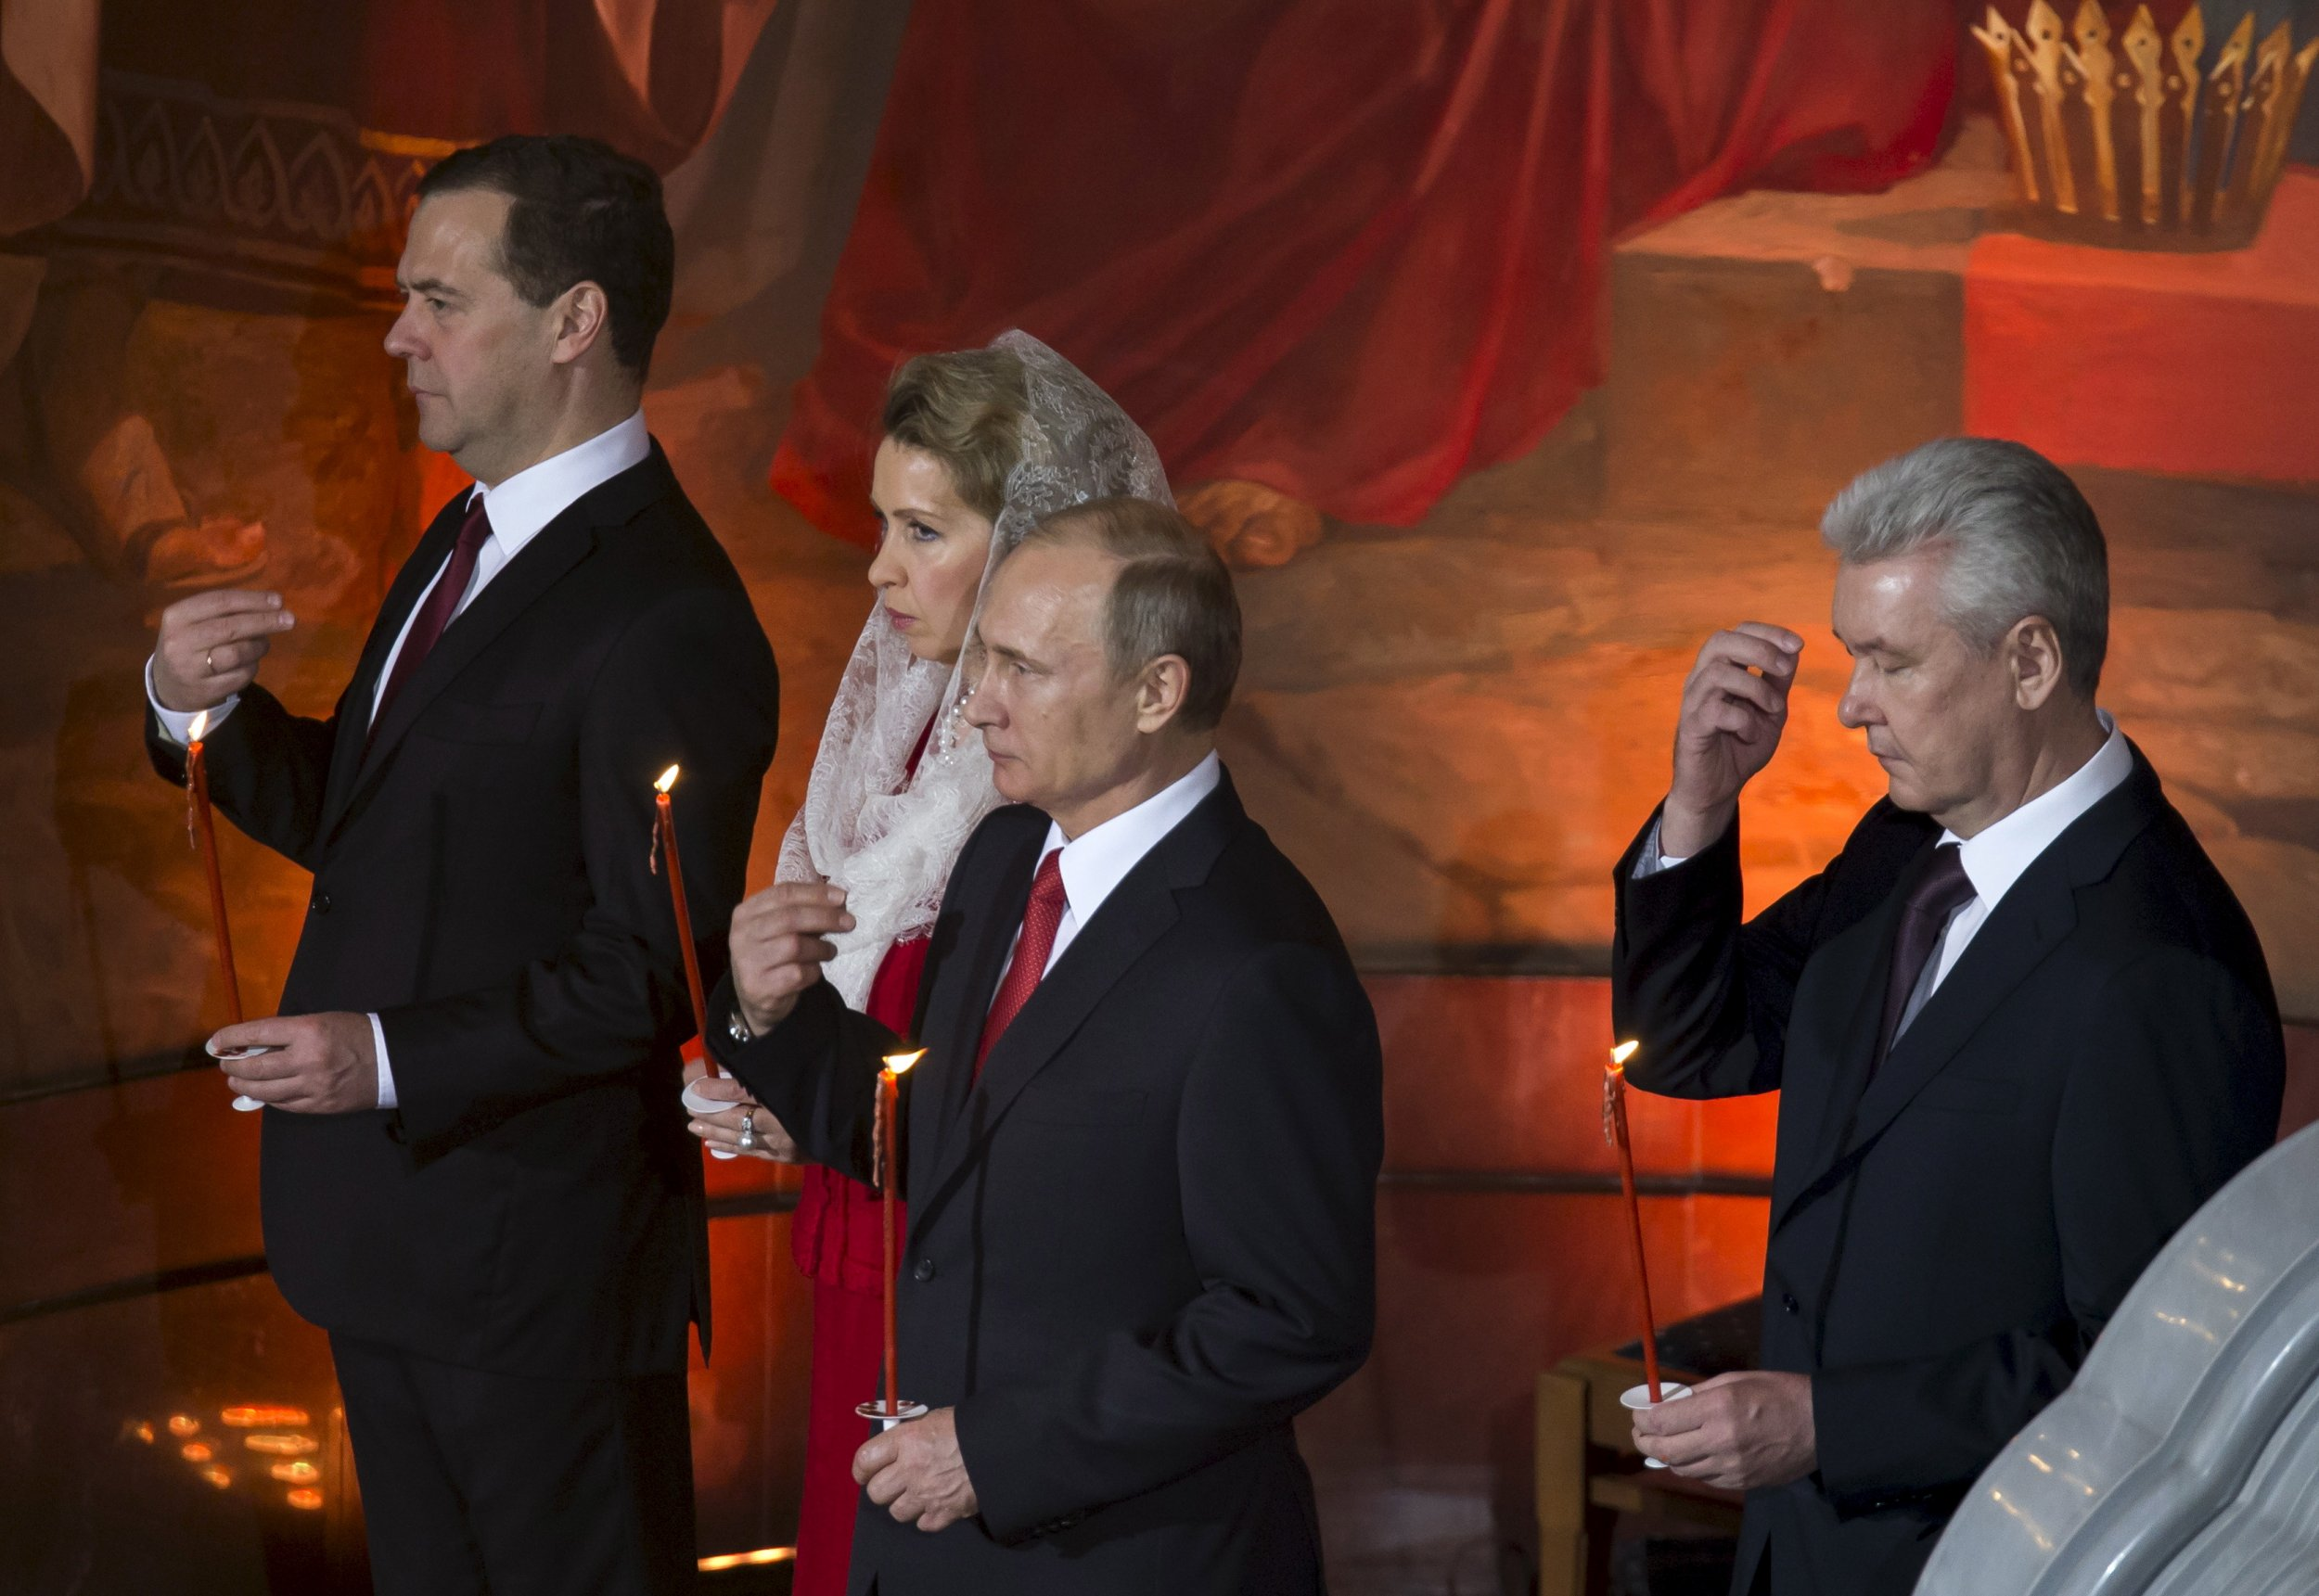 Putin, Sobyanin and the Medvedev family